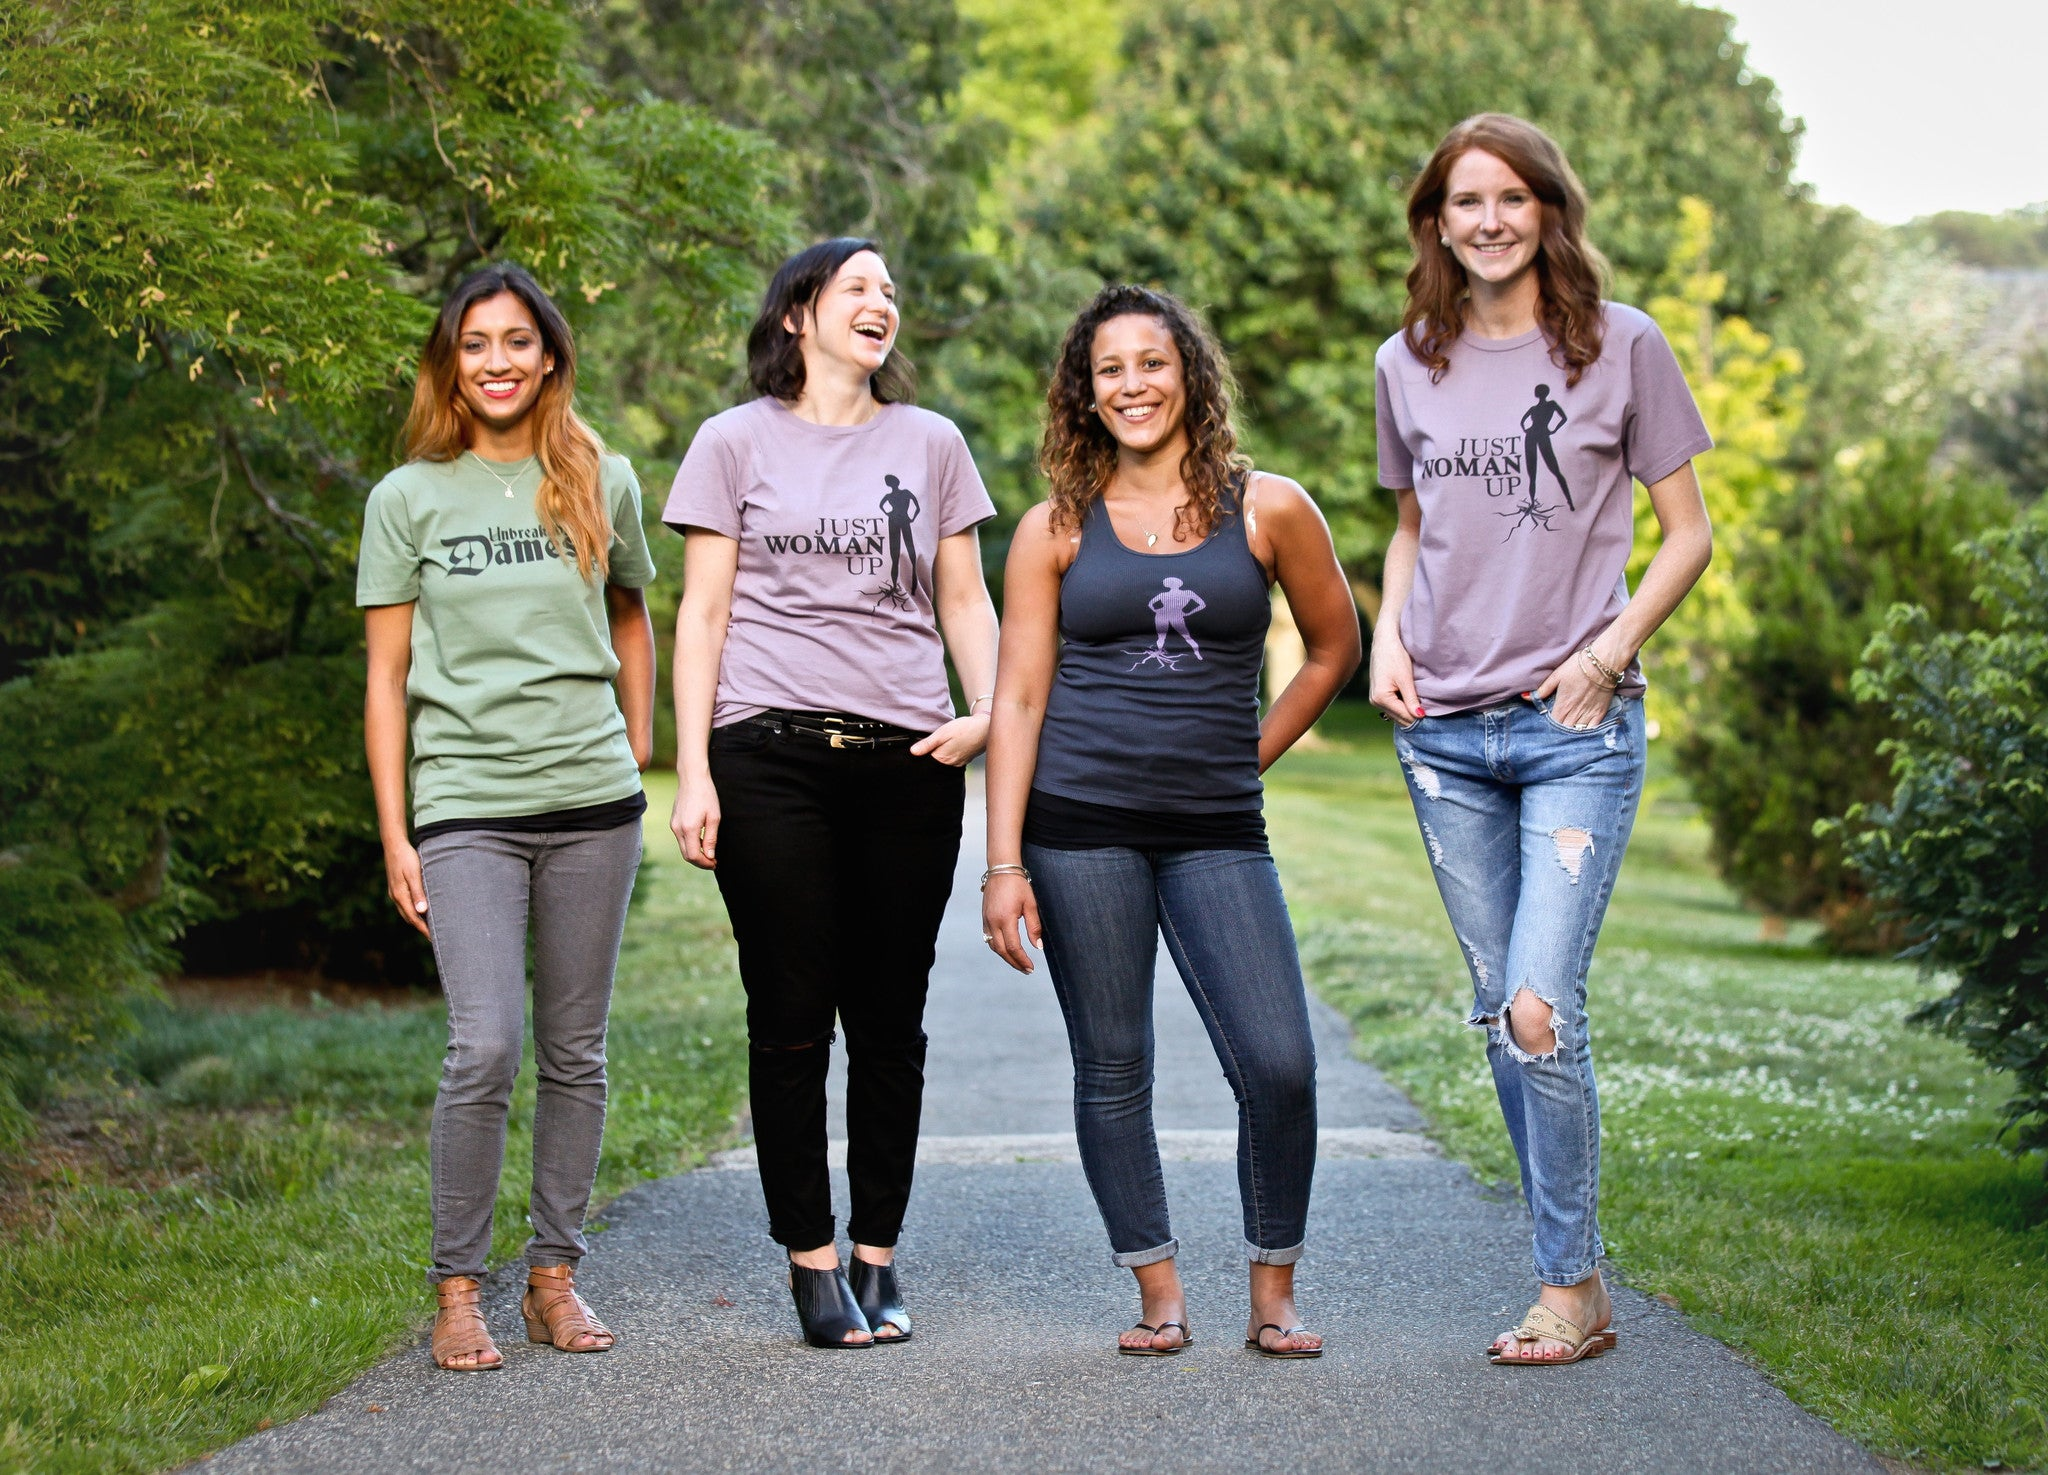 Organic Grasshopper Unbreakable Dames Tee, Eggplant Just Woman Up Tees, & Soft Black Tank Top